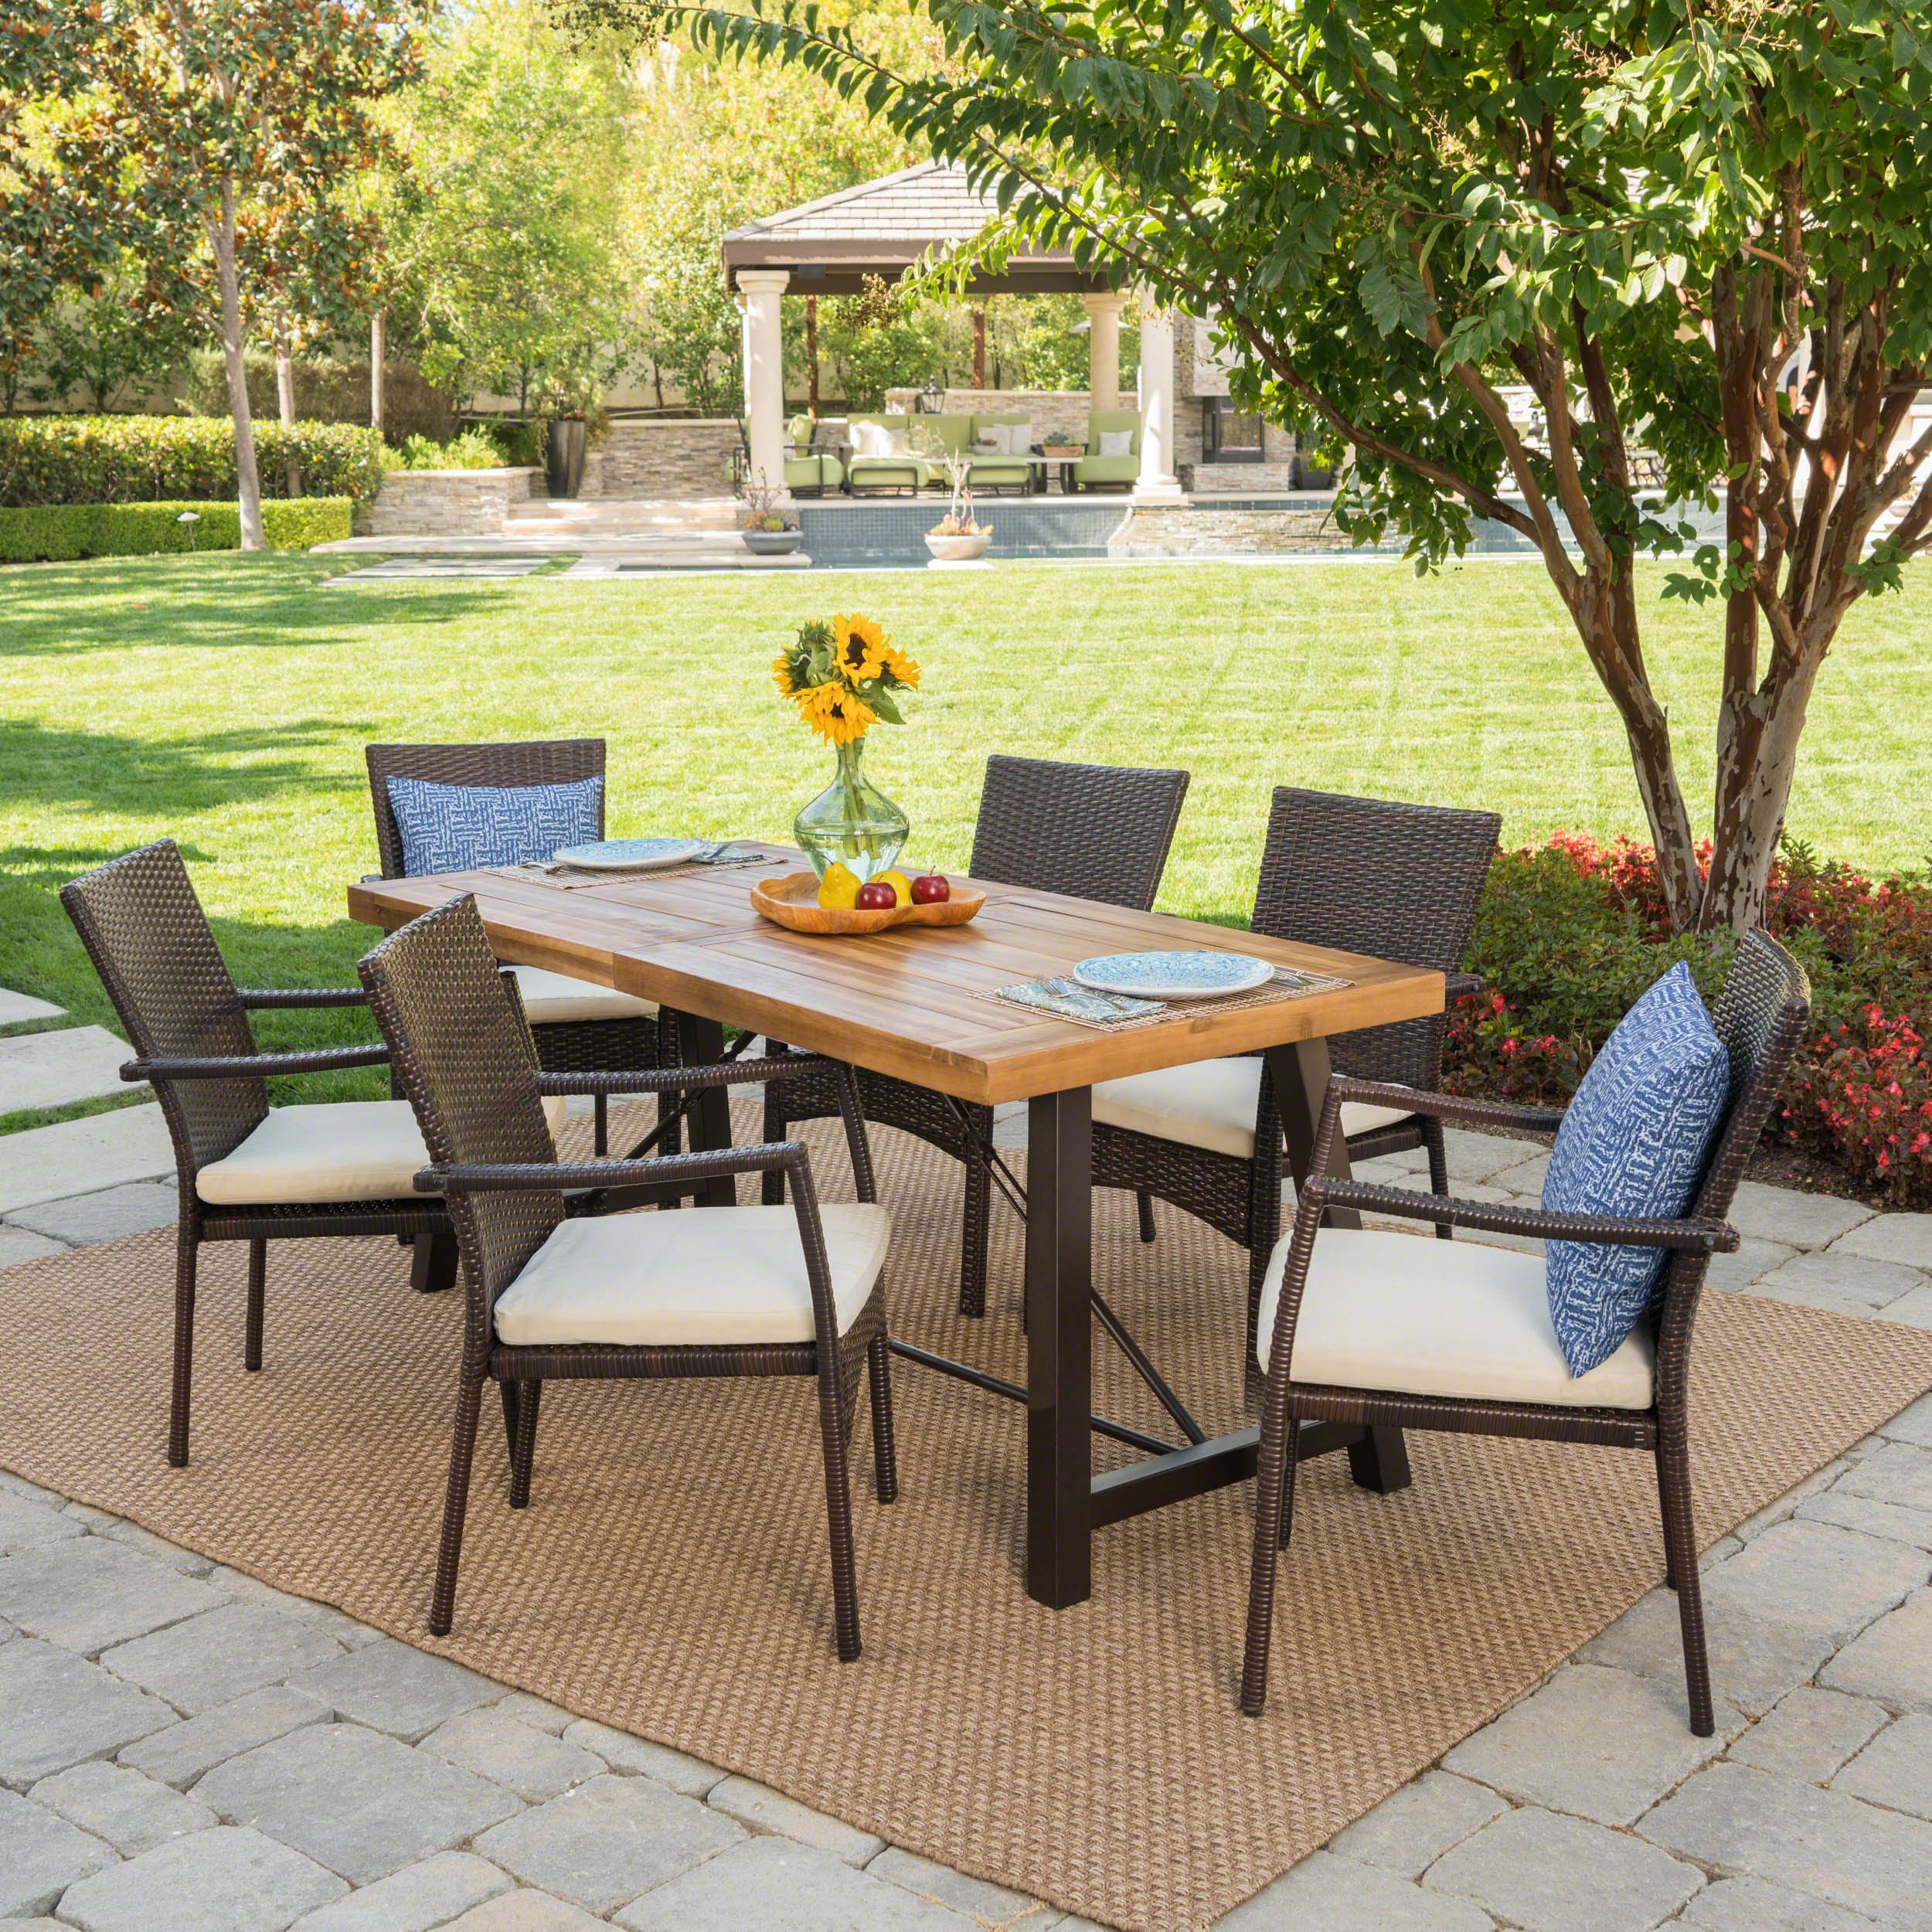 Christopher Knight Home Playa | Outdoor 7-Piece Wood/Wicker Dining Set with Water Resistant Cushions | in Brown/Teak Finish/Cream